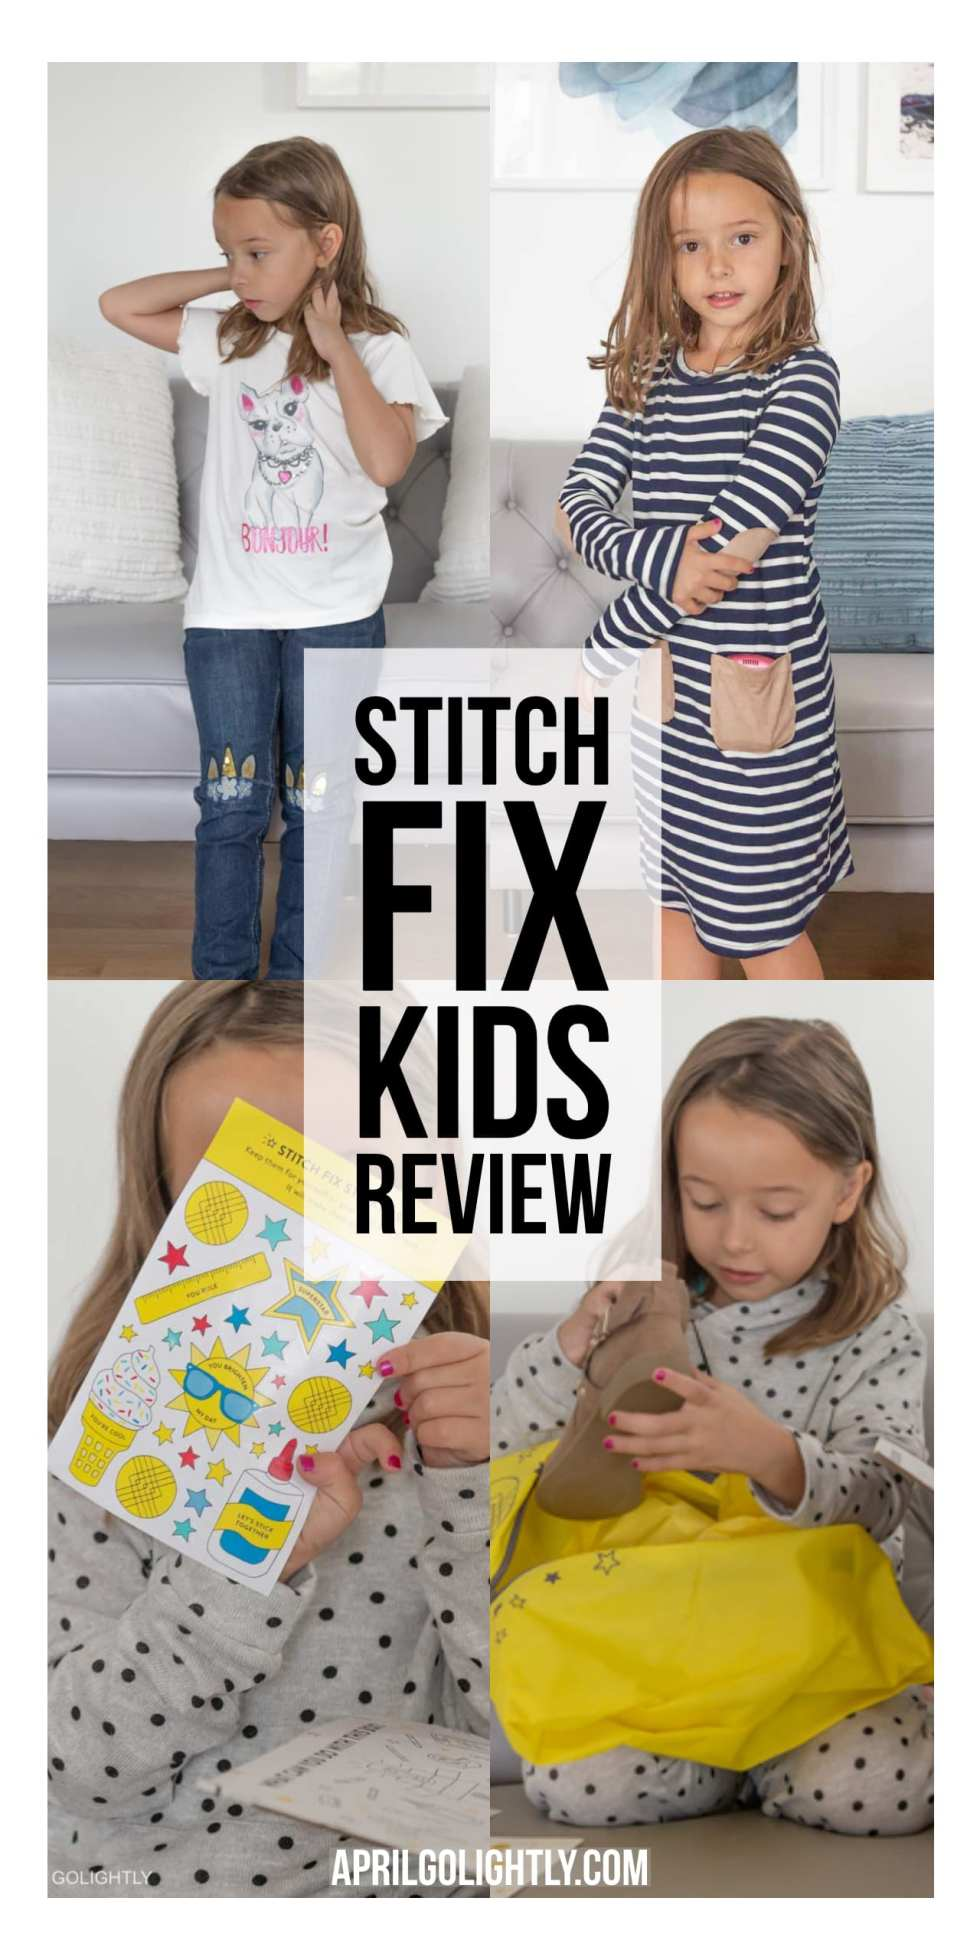 Stitch Fix Kids Review for Girls